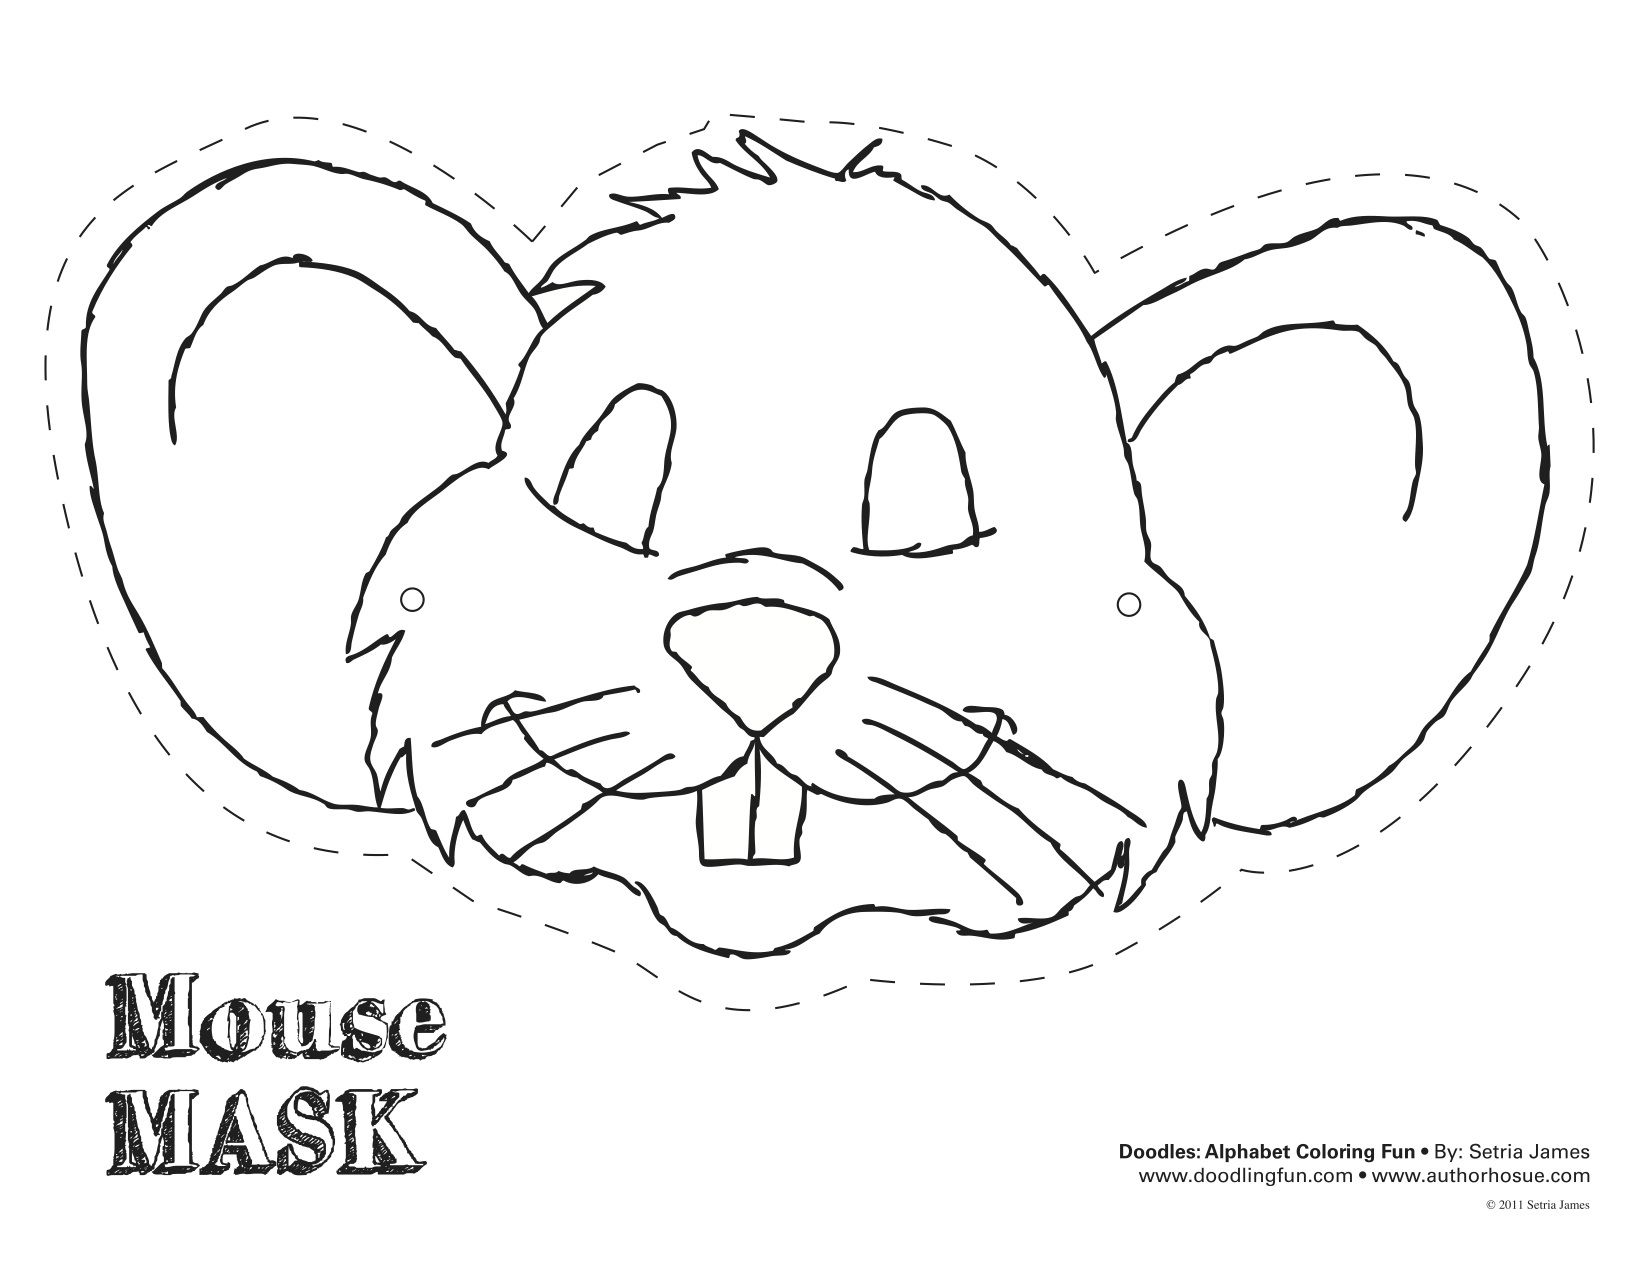 Mouse Mask! #theatrics #kiddos #play #craft #coloring